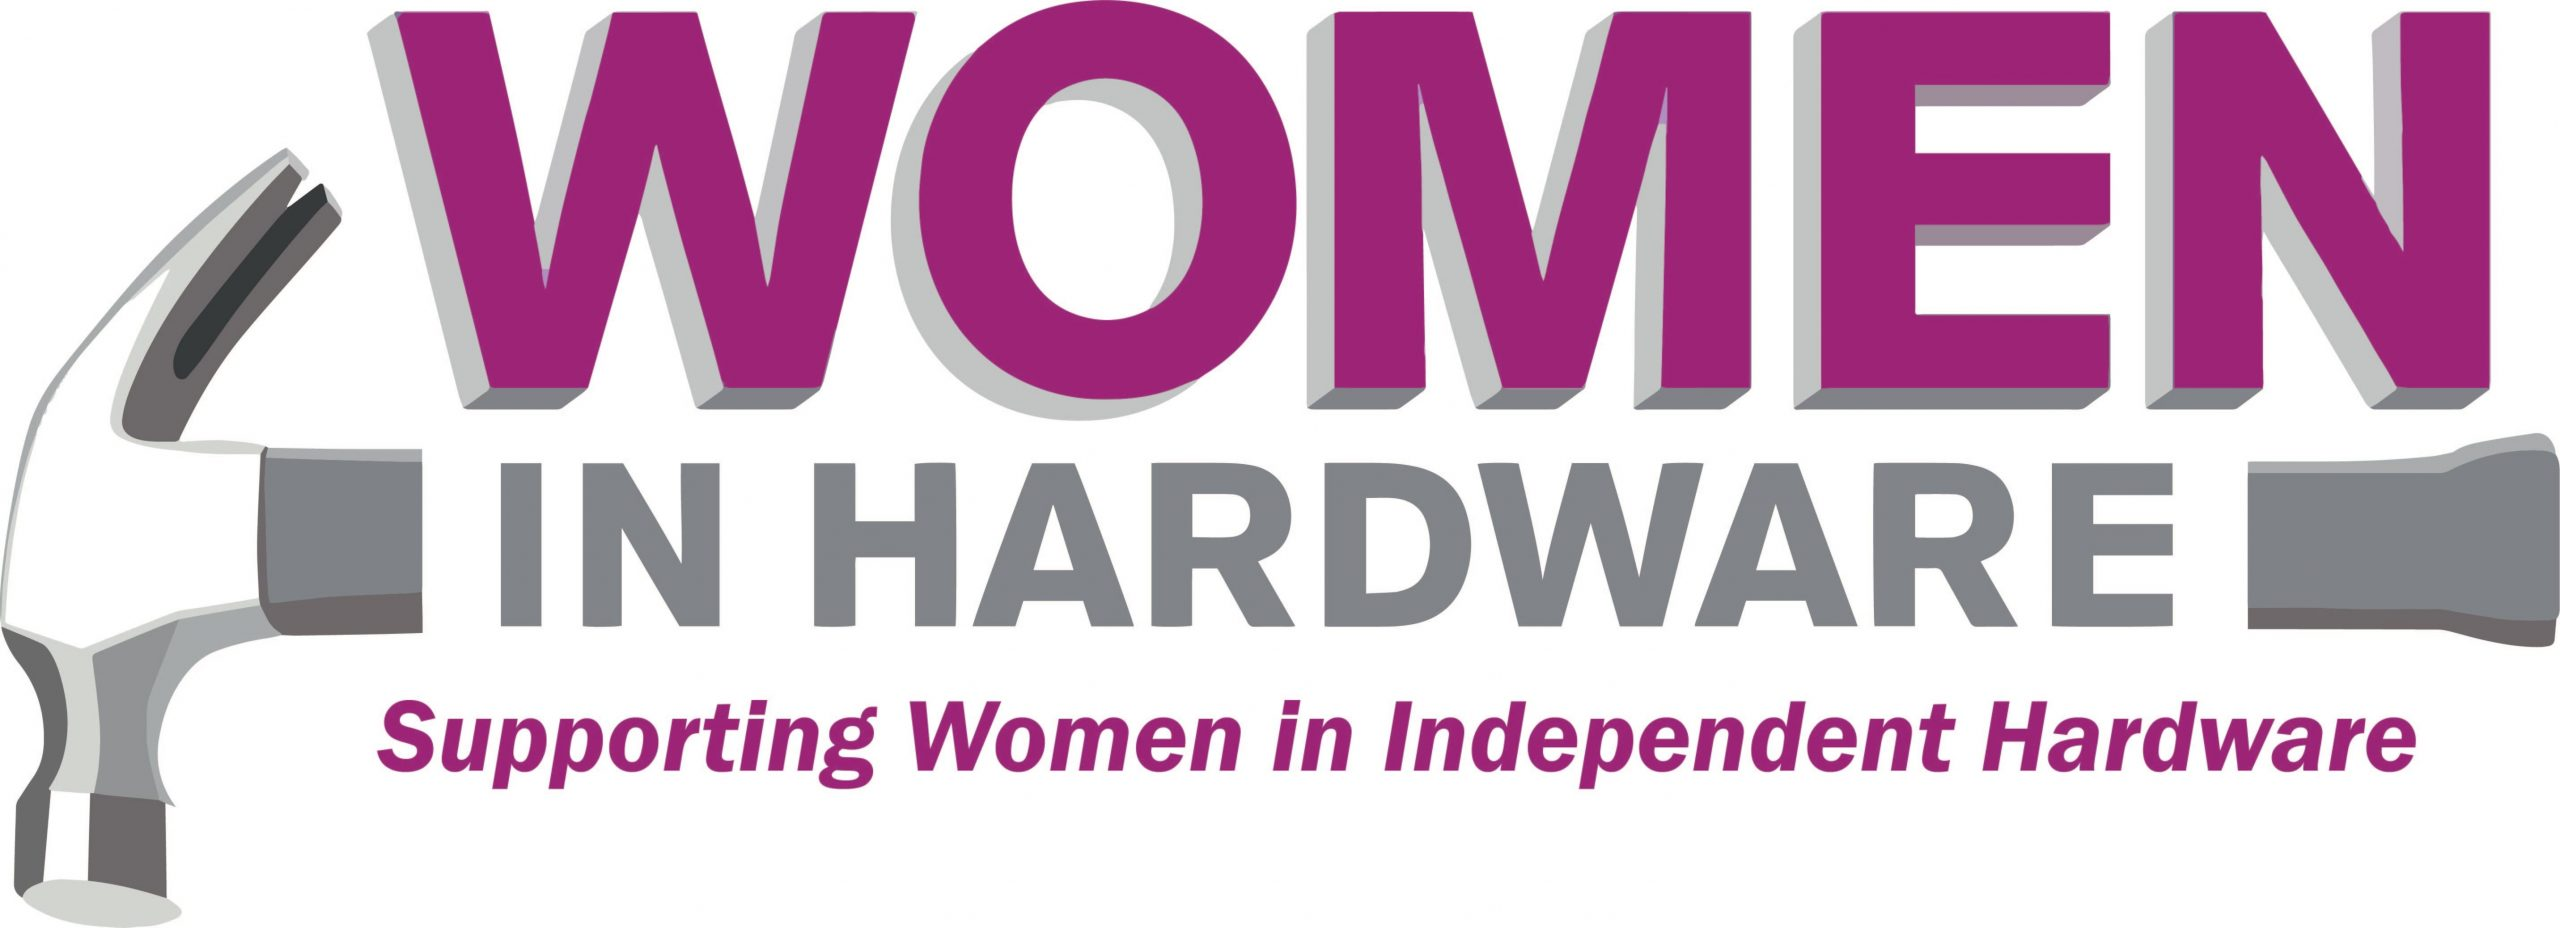 women in hardware logo